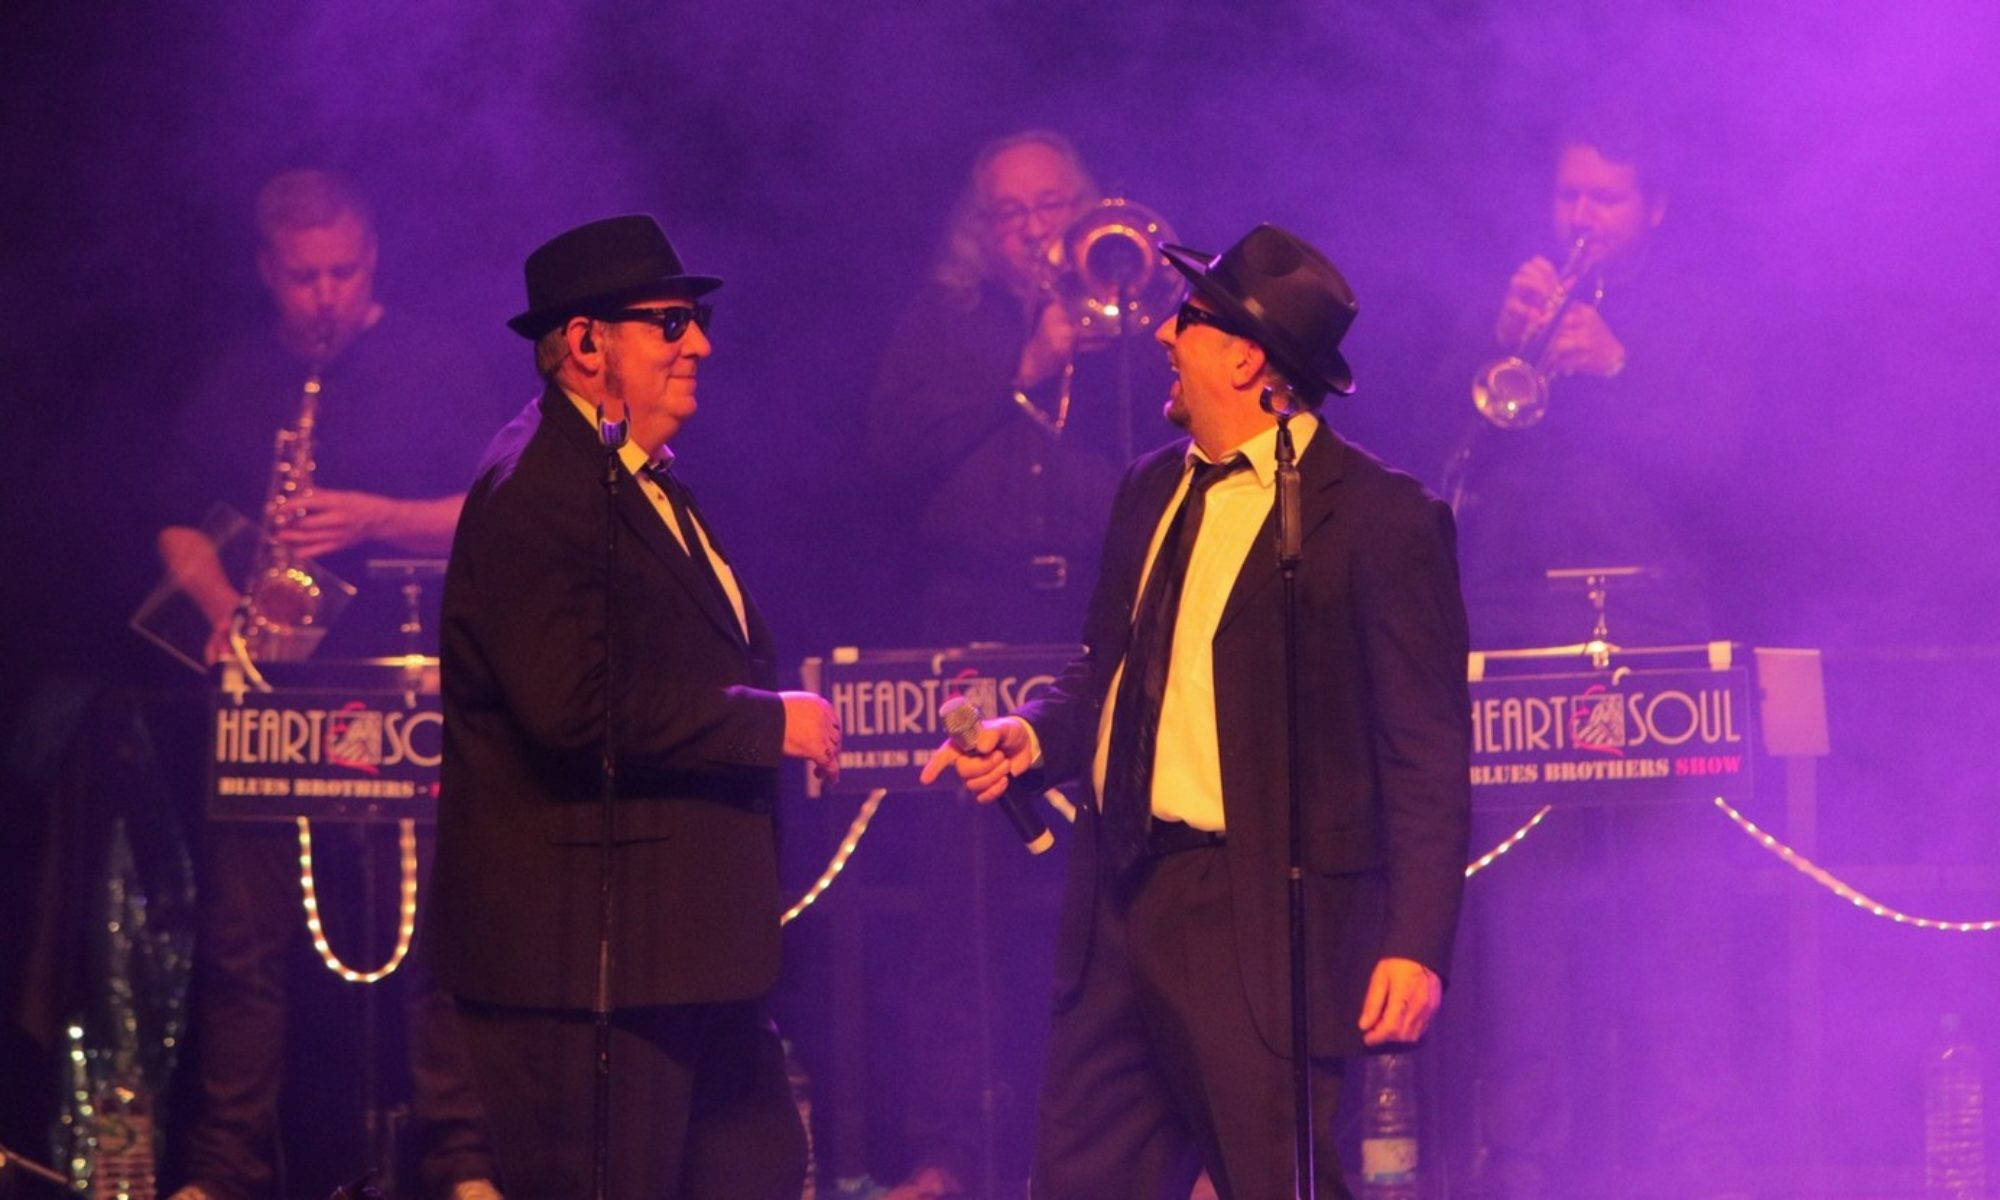 NO1 BLUESBROTHERS.SHOW